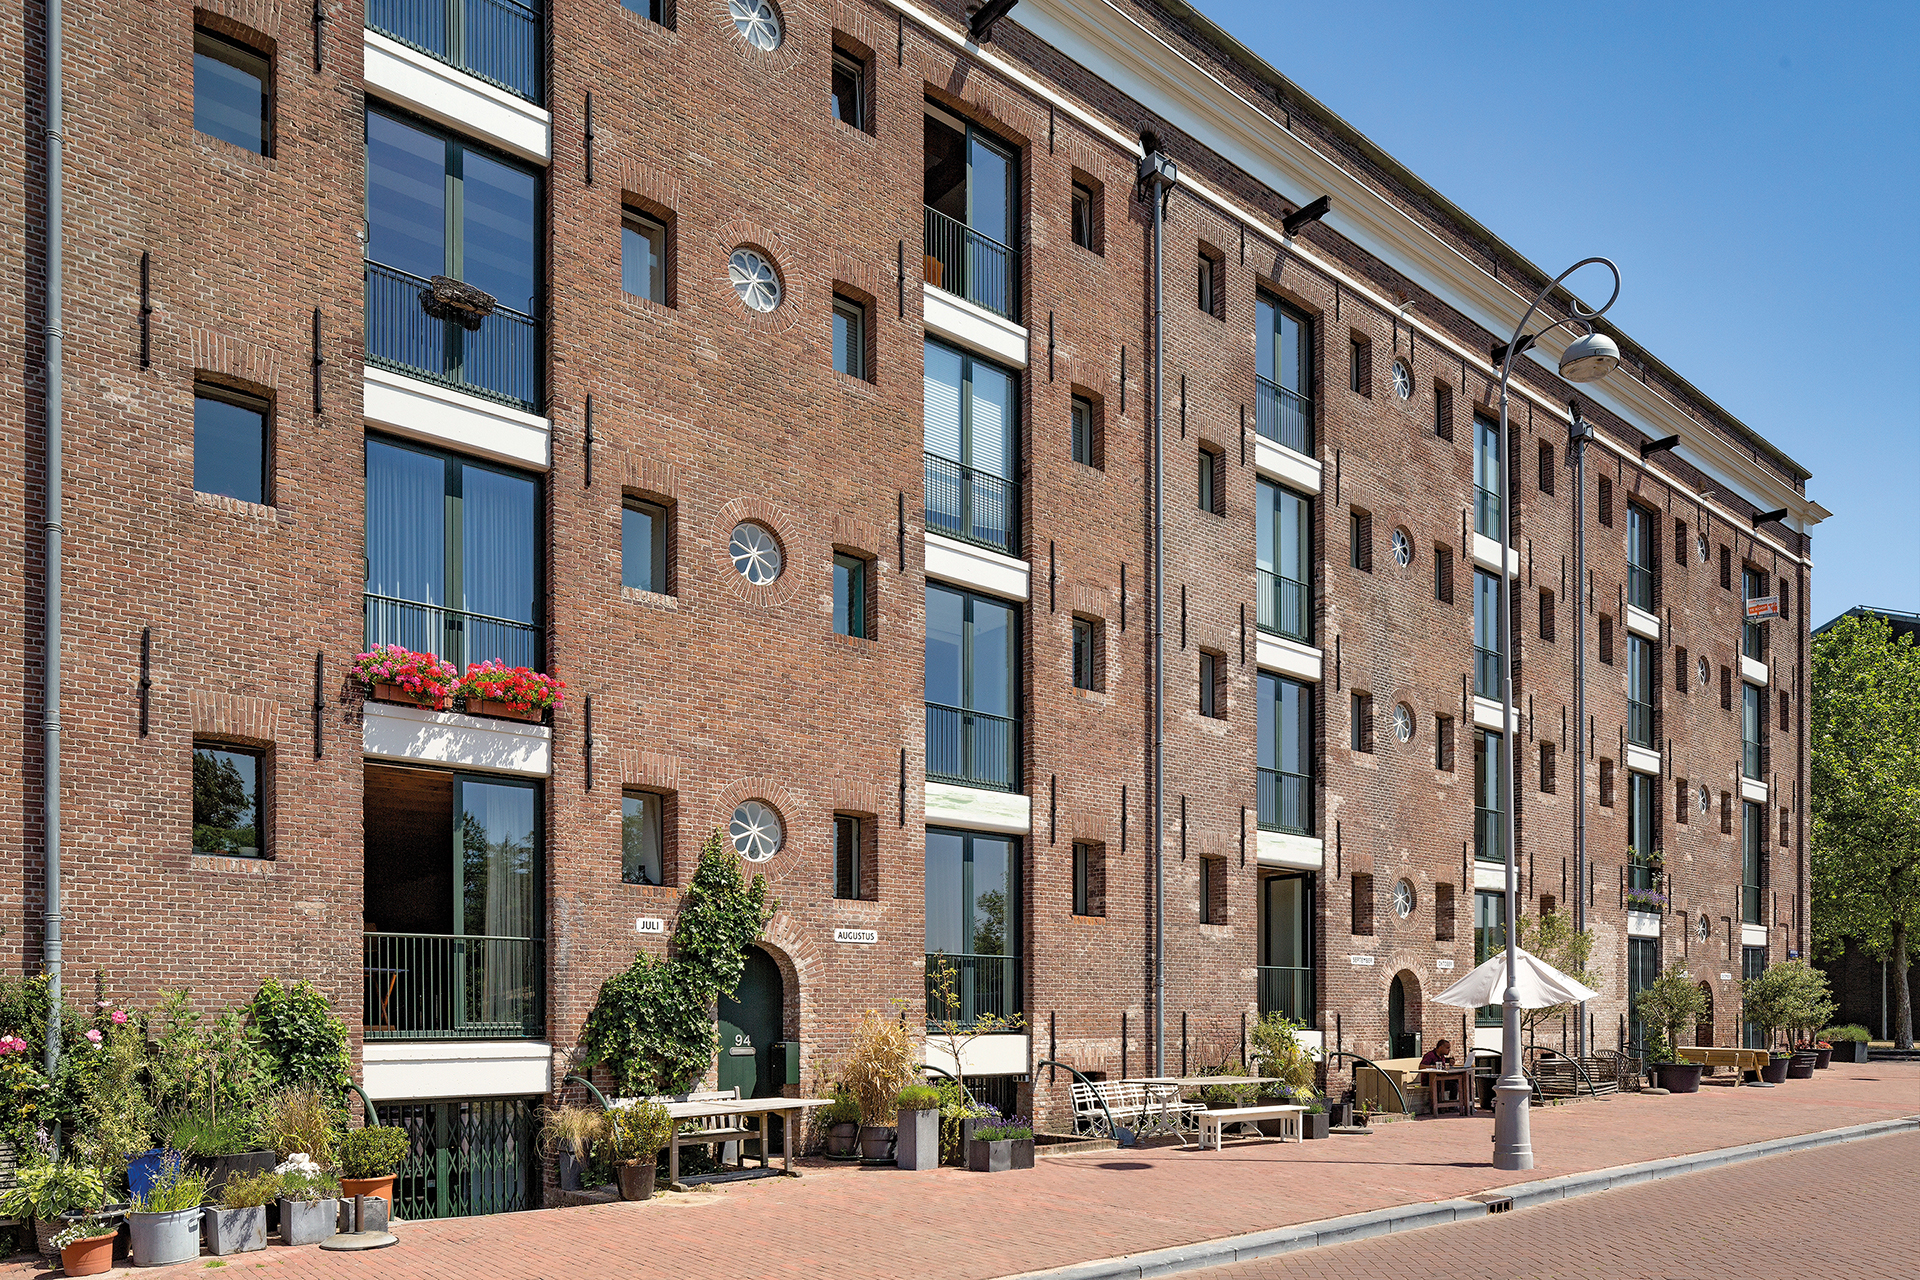 Historical amsterdam warehouse renovated into modern apartment building